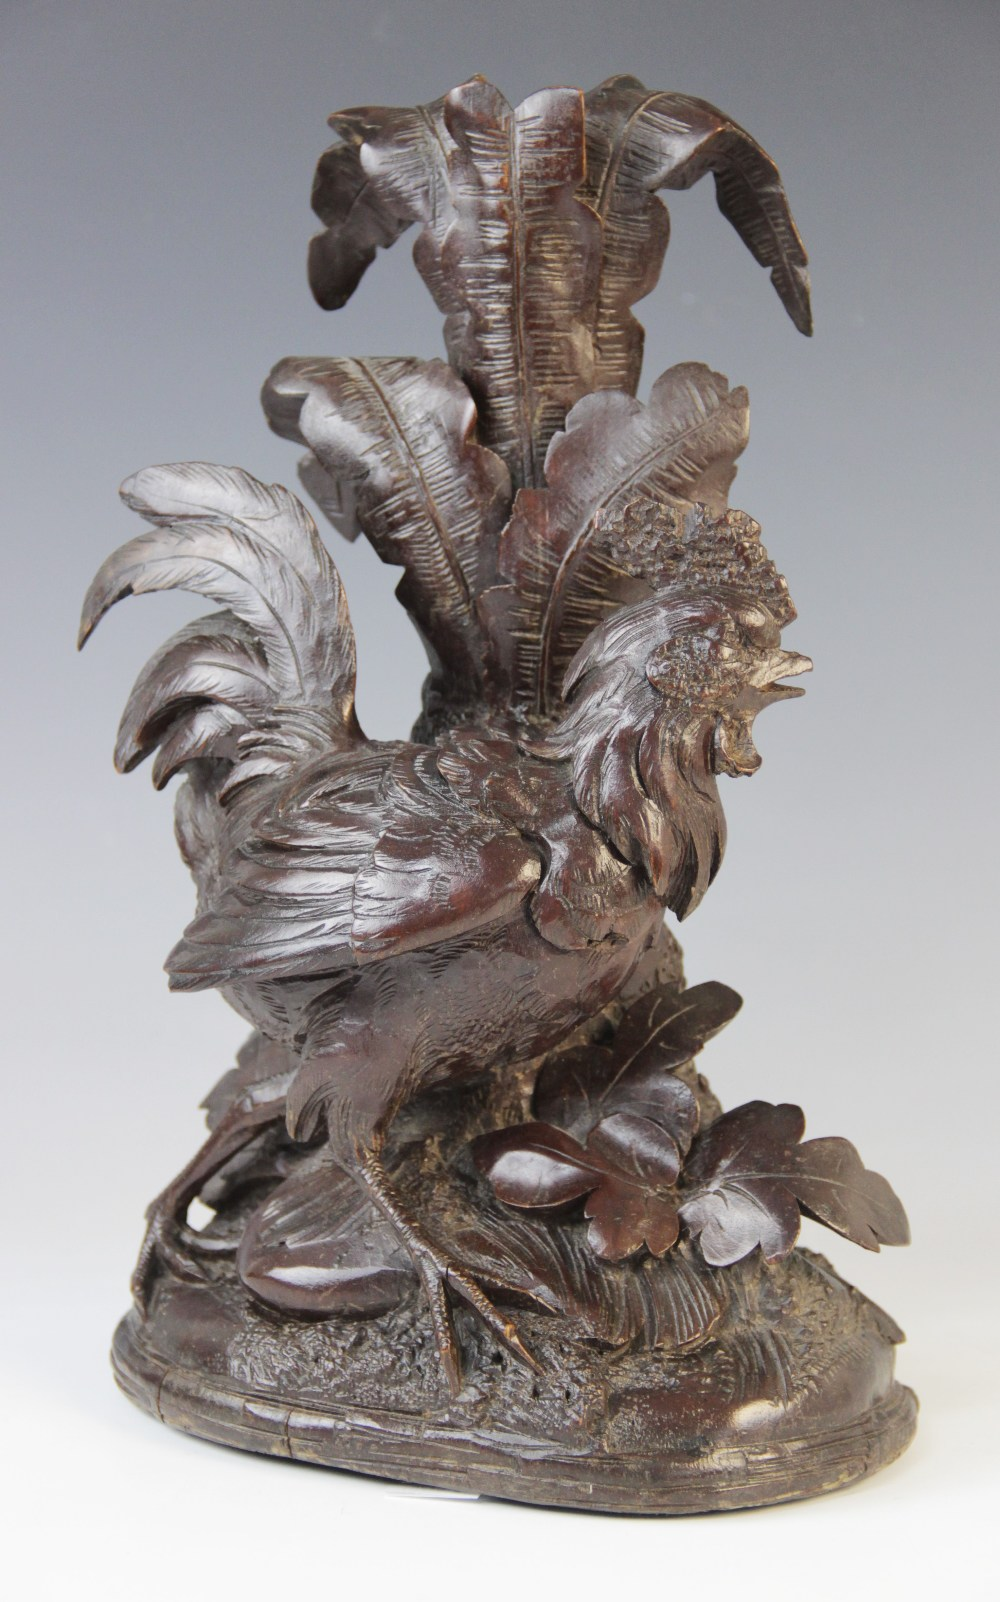 A Black Forest wood carving, probably 20th century, modelled as a cockerel strutting across a - Image 2 of 2